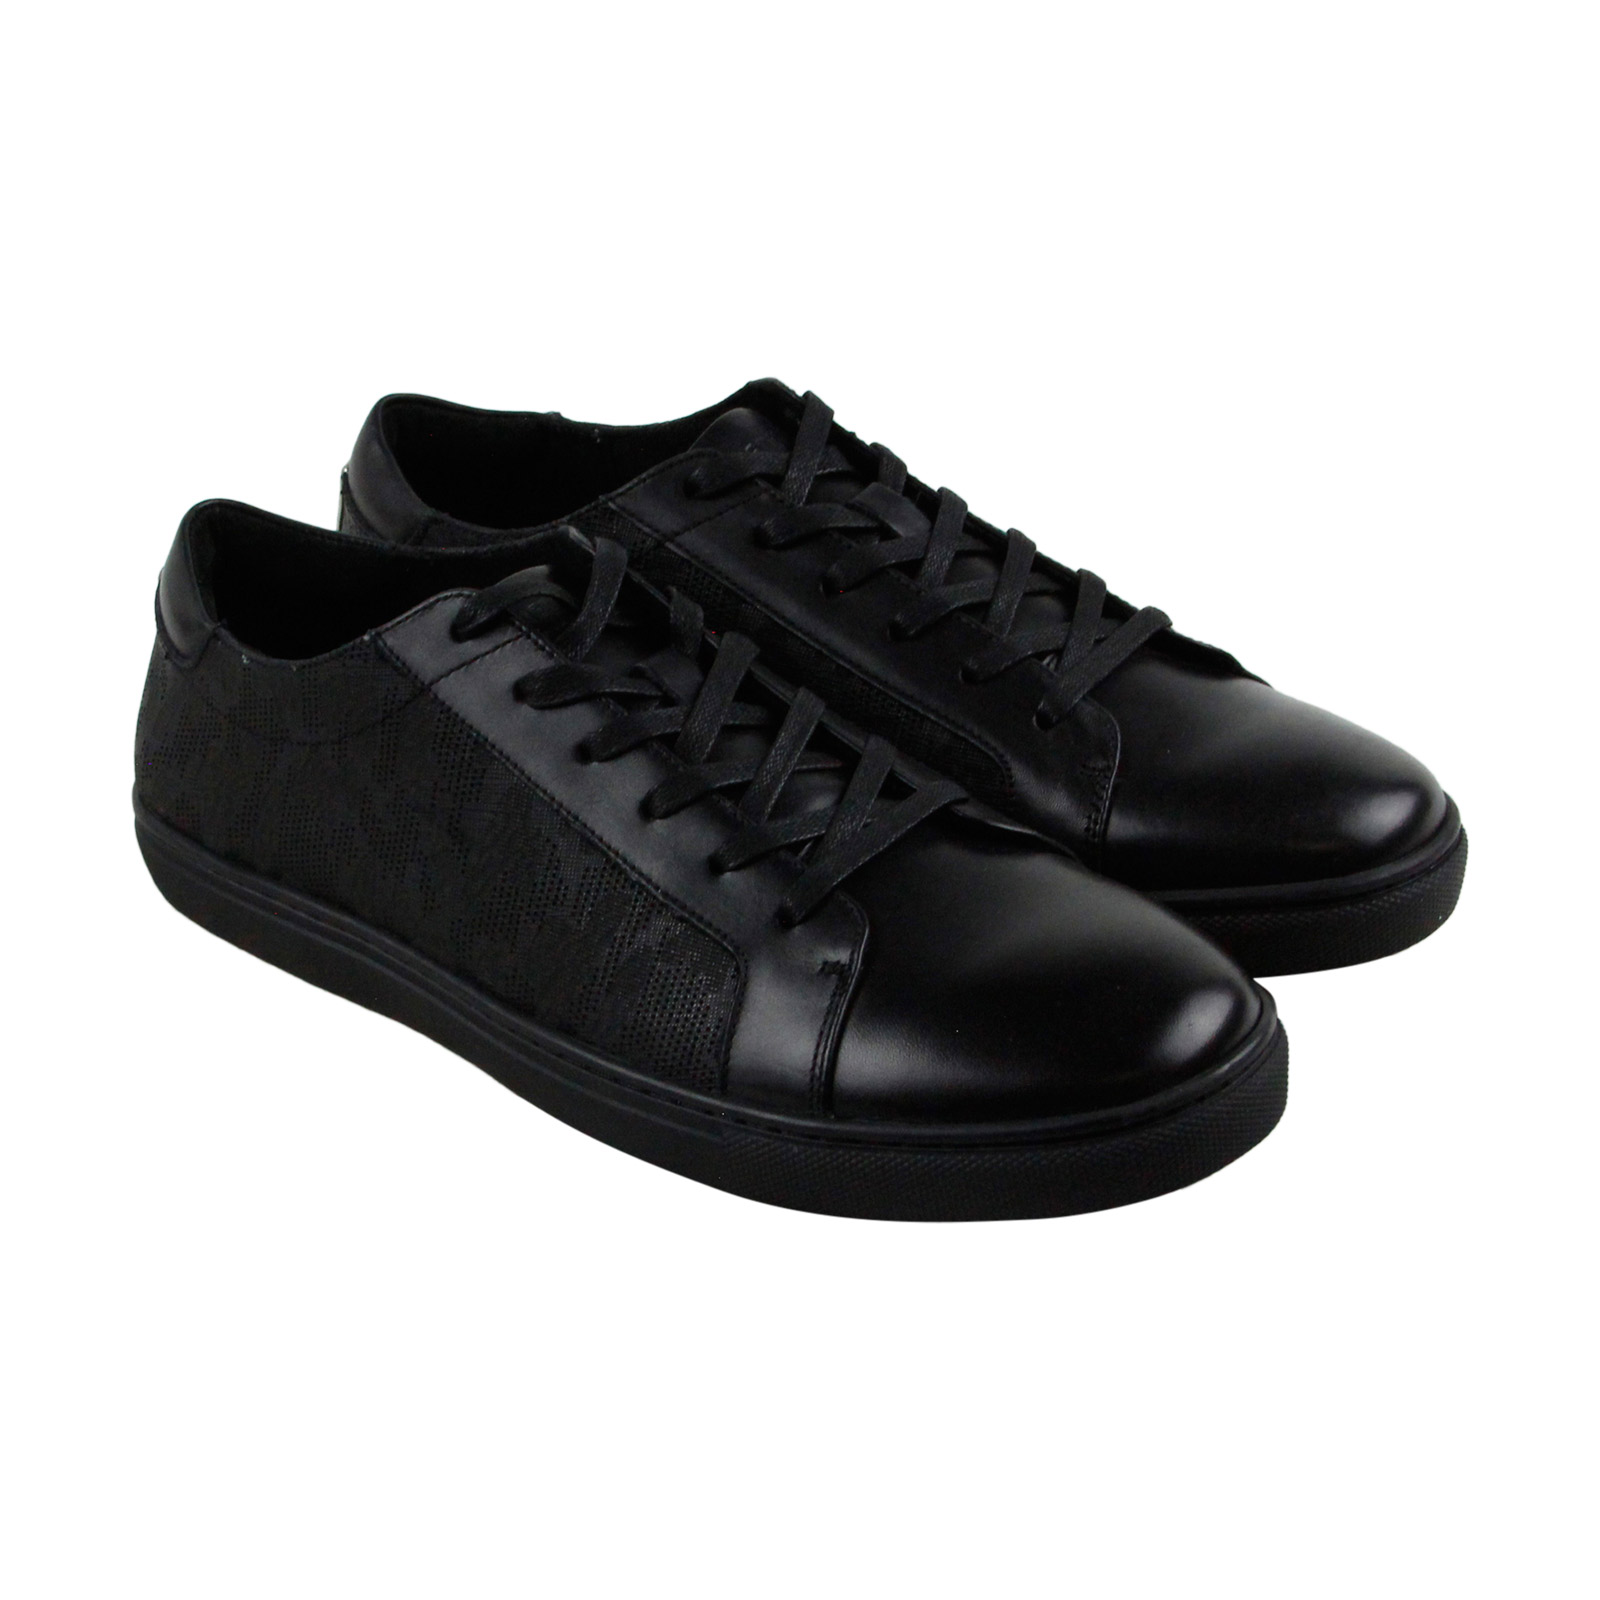 Kenneth Cole New York Kam Mens Black Leather Lace Up Sneakers Shoes